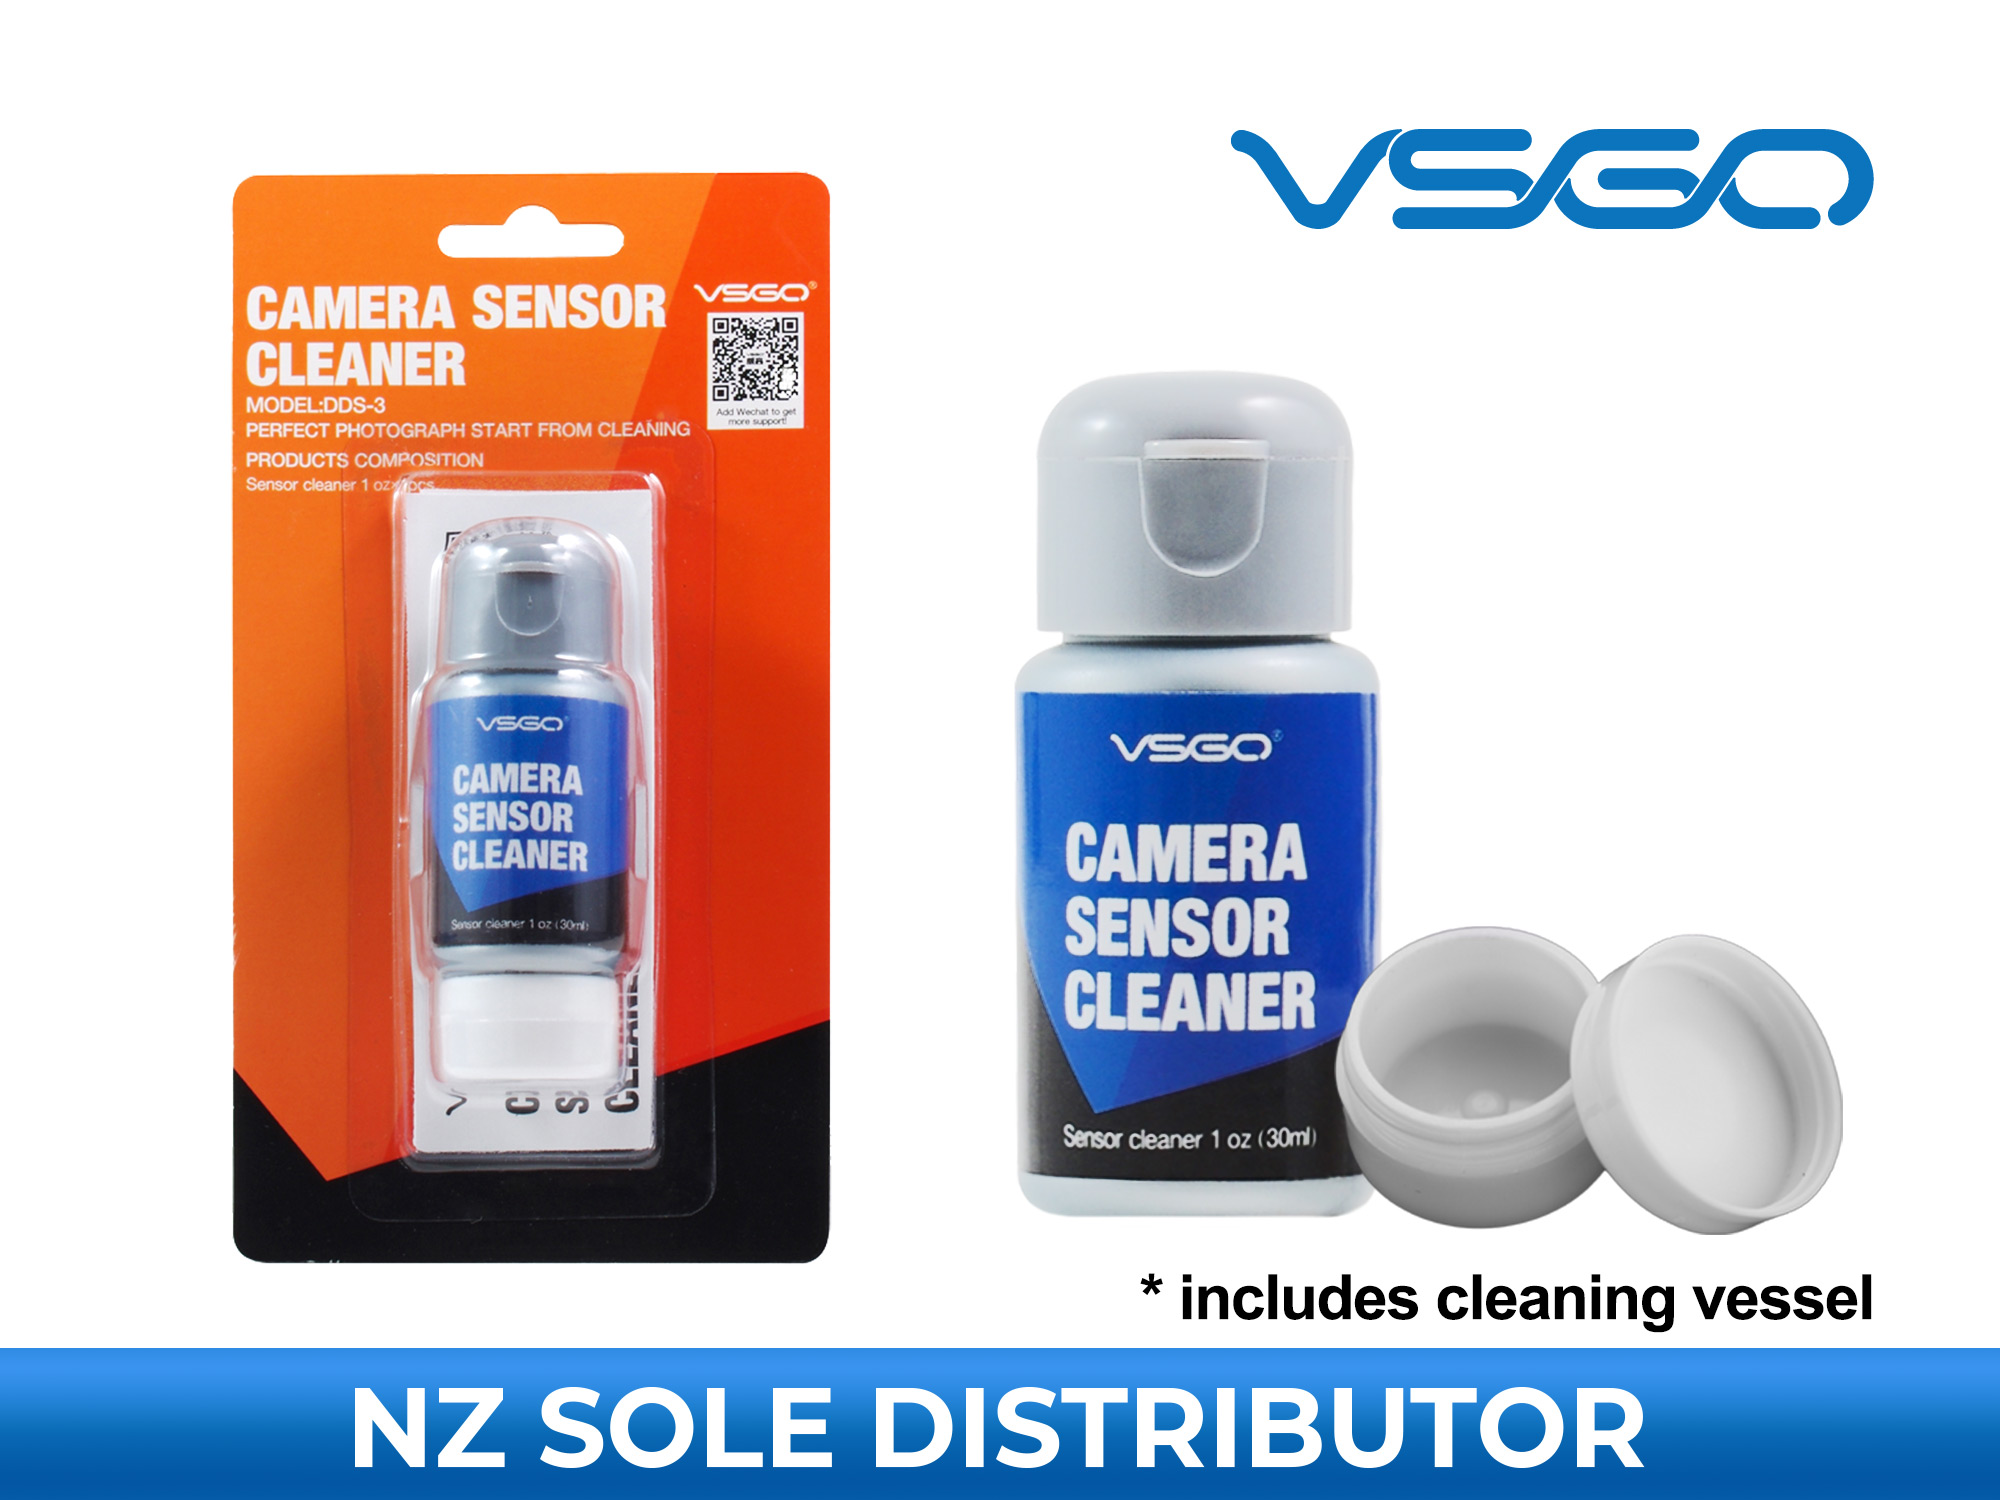 Camera Sensor Cleaning Solution - VSGO